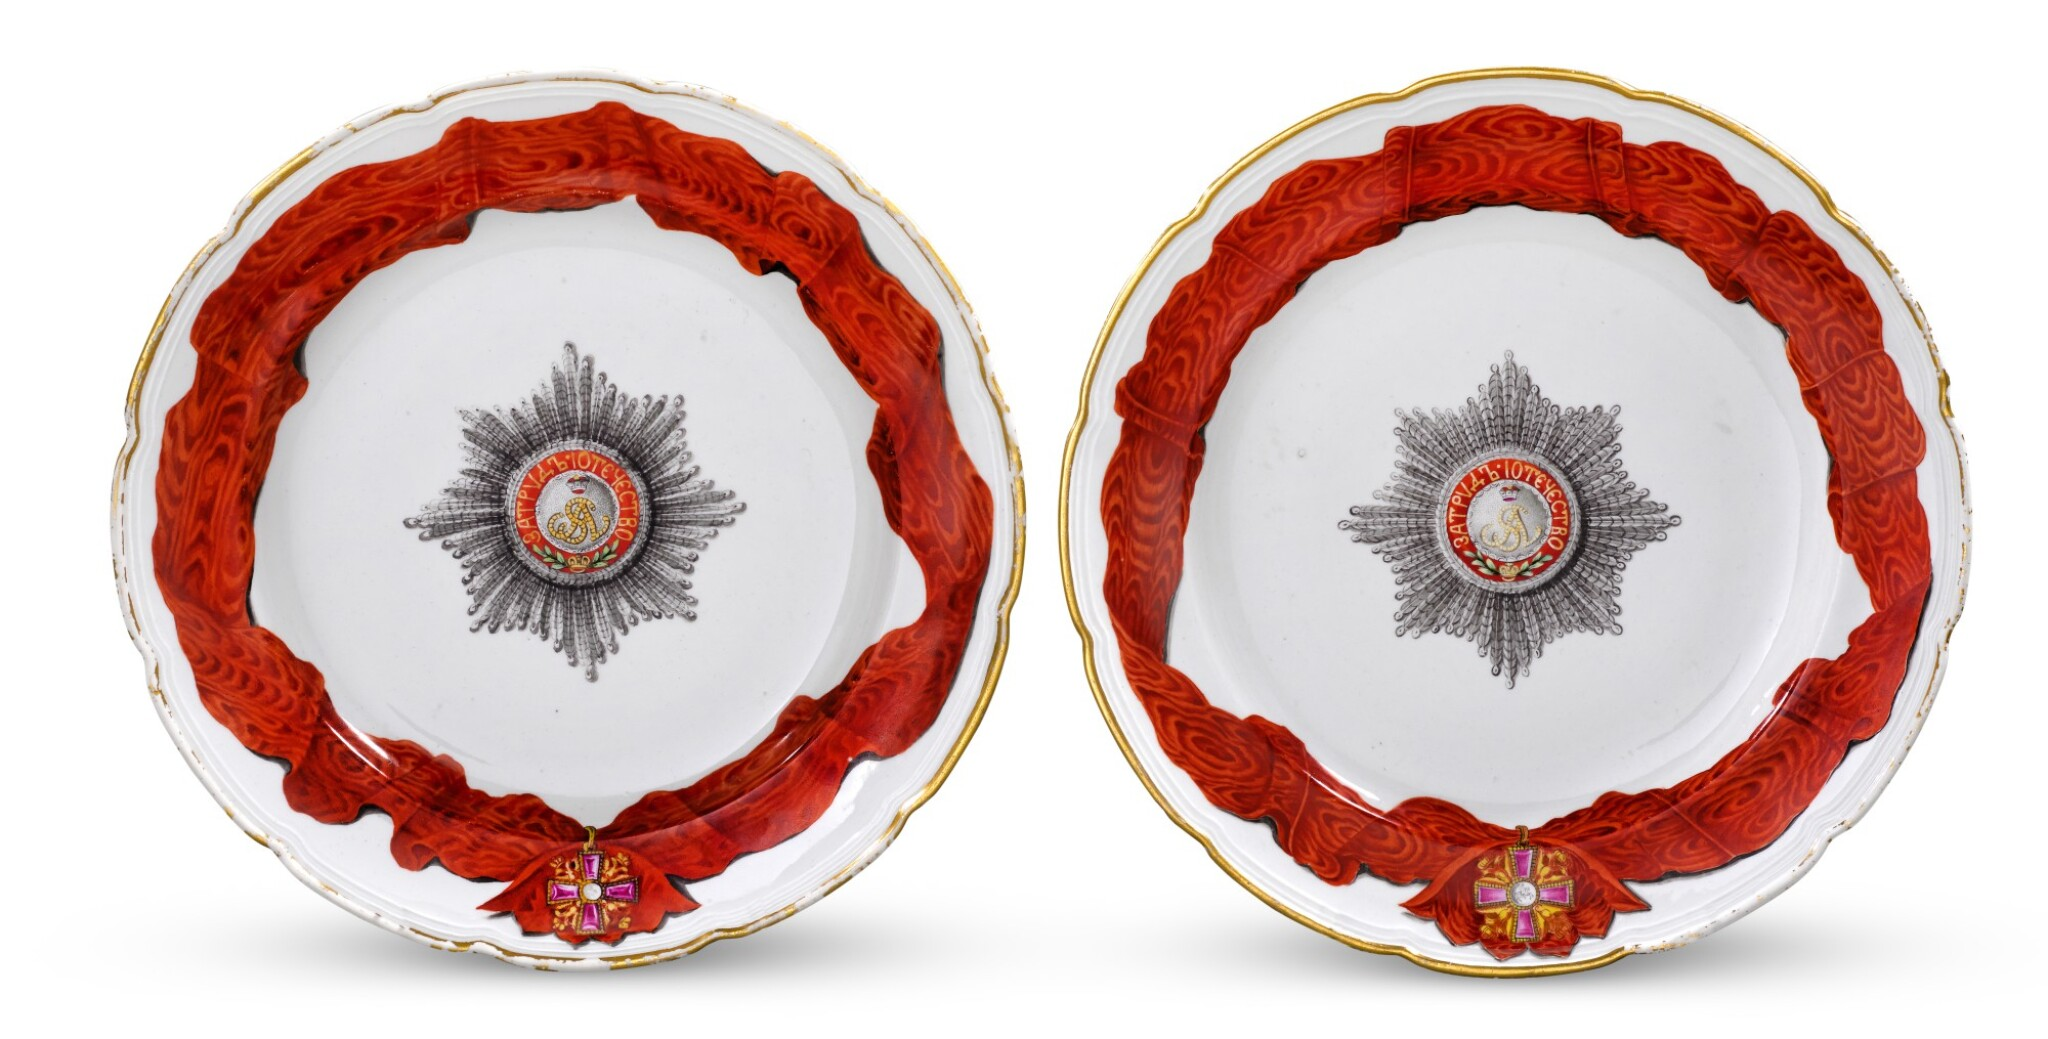 View full screen - View 1 of Lot 118. Two Porcelain Plates from the Service for the Imperial Order of St. Alexander Nevsky, Gardner Porcelain Factory, Verbilki, 1778-1780.